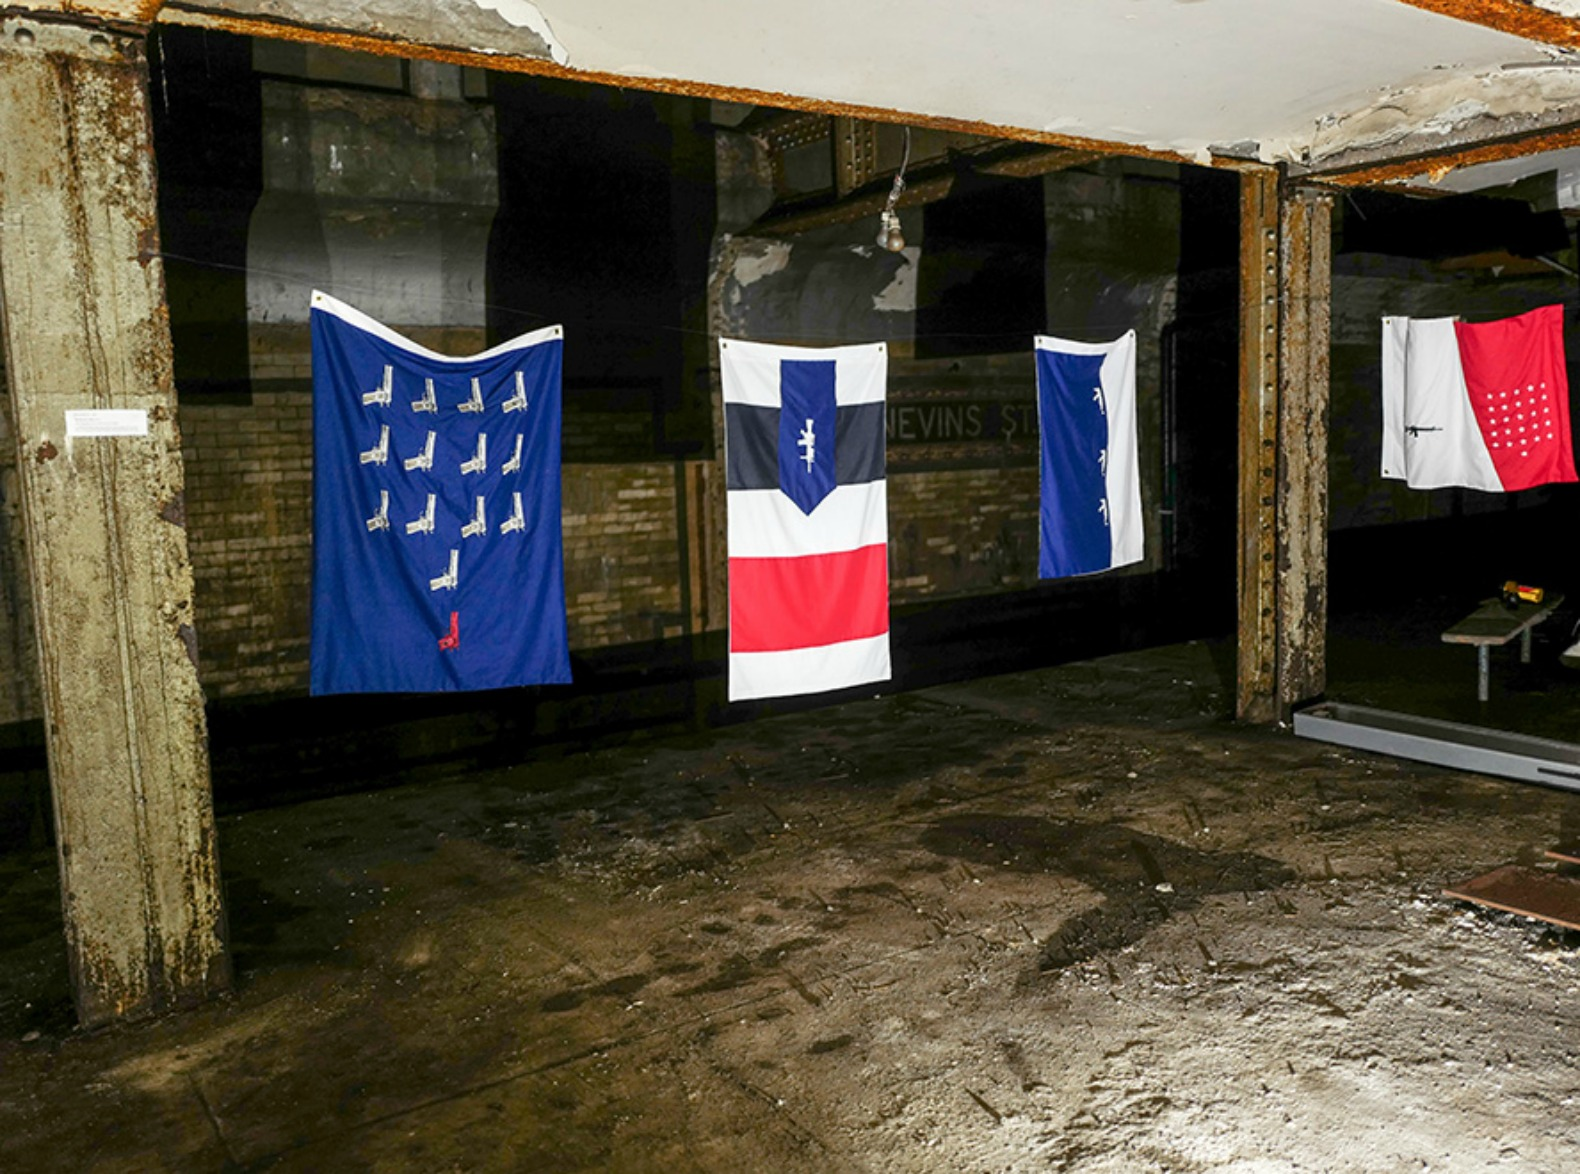 Clandestine Subway Art In Abandoned Tunnel Makes Statement About Gun Violence